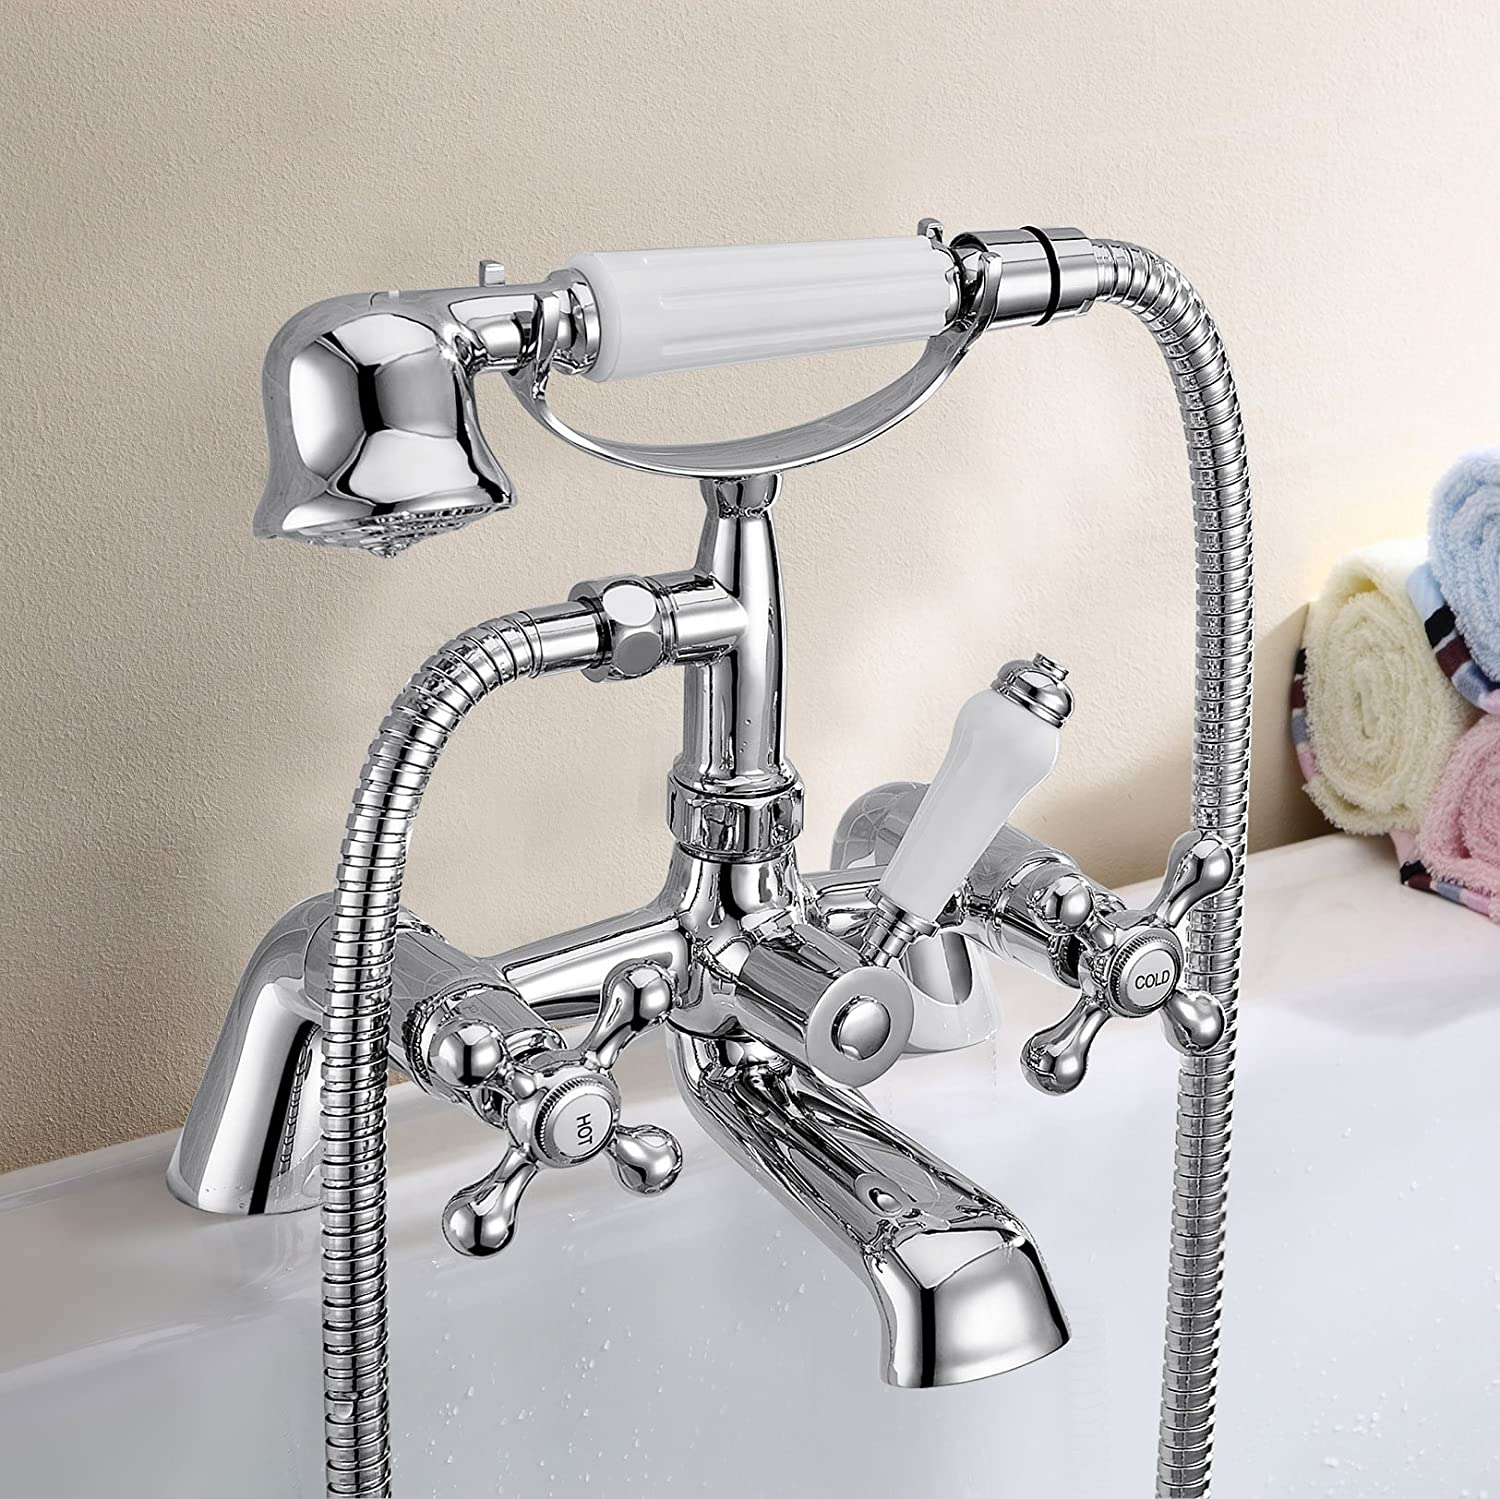 stafford traditional classic bathroom bath shower mixer victorian stafford traditional classic bathroom bath shower mixer victorian victoria amazon co uk kitchen home